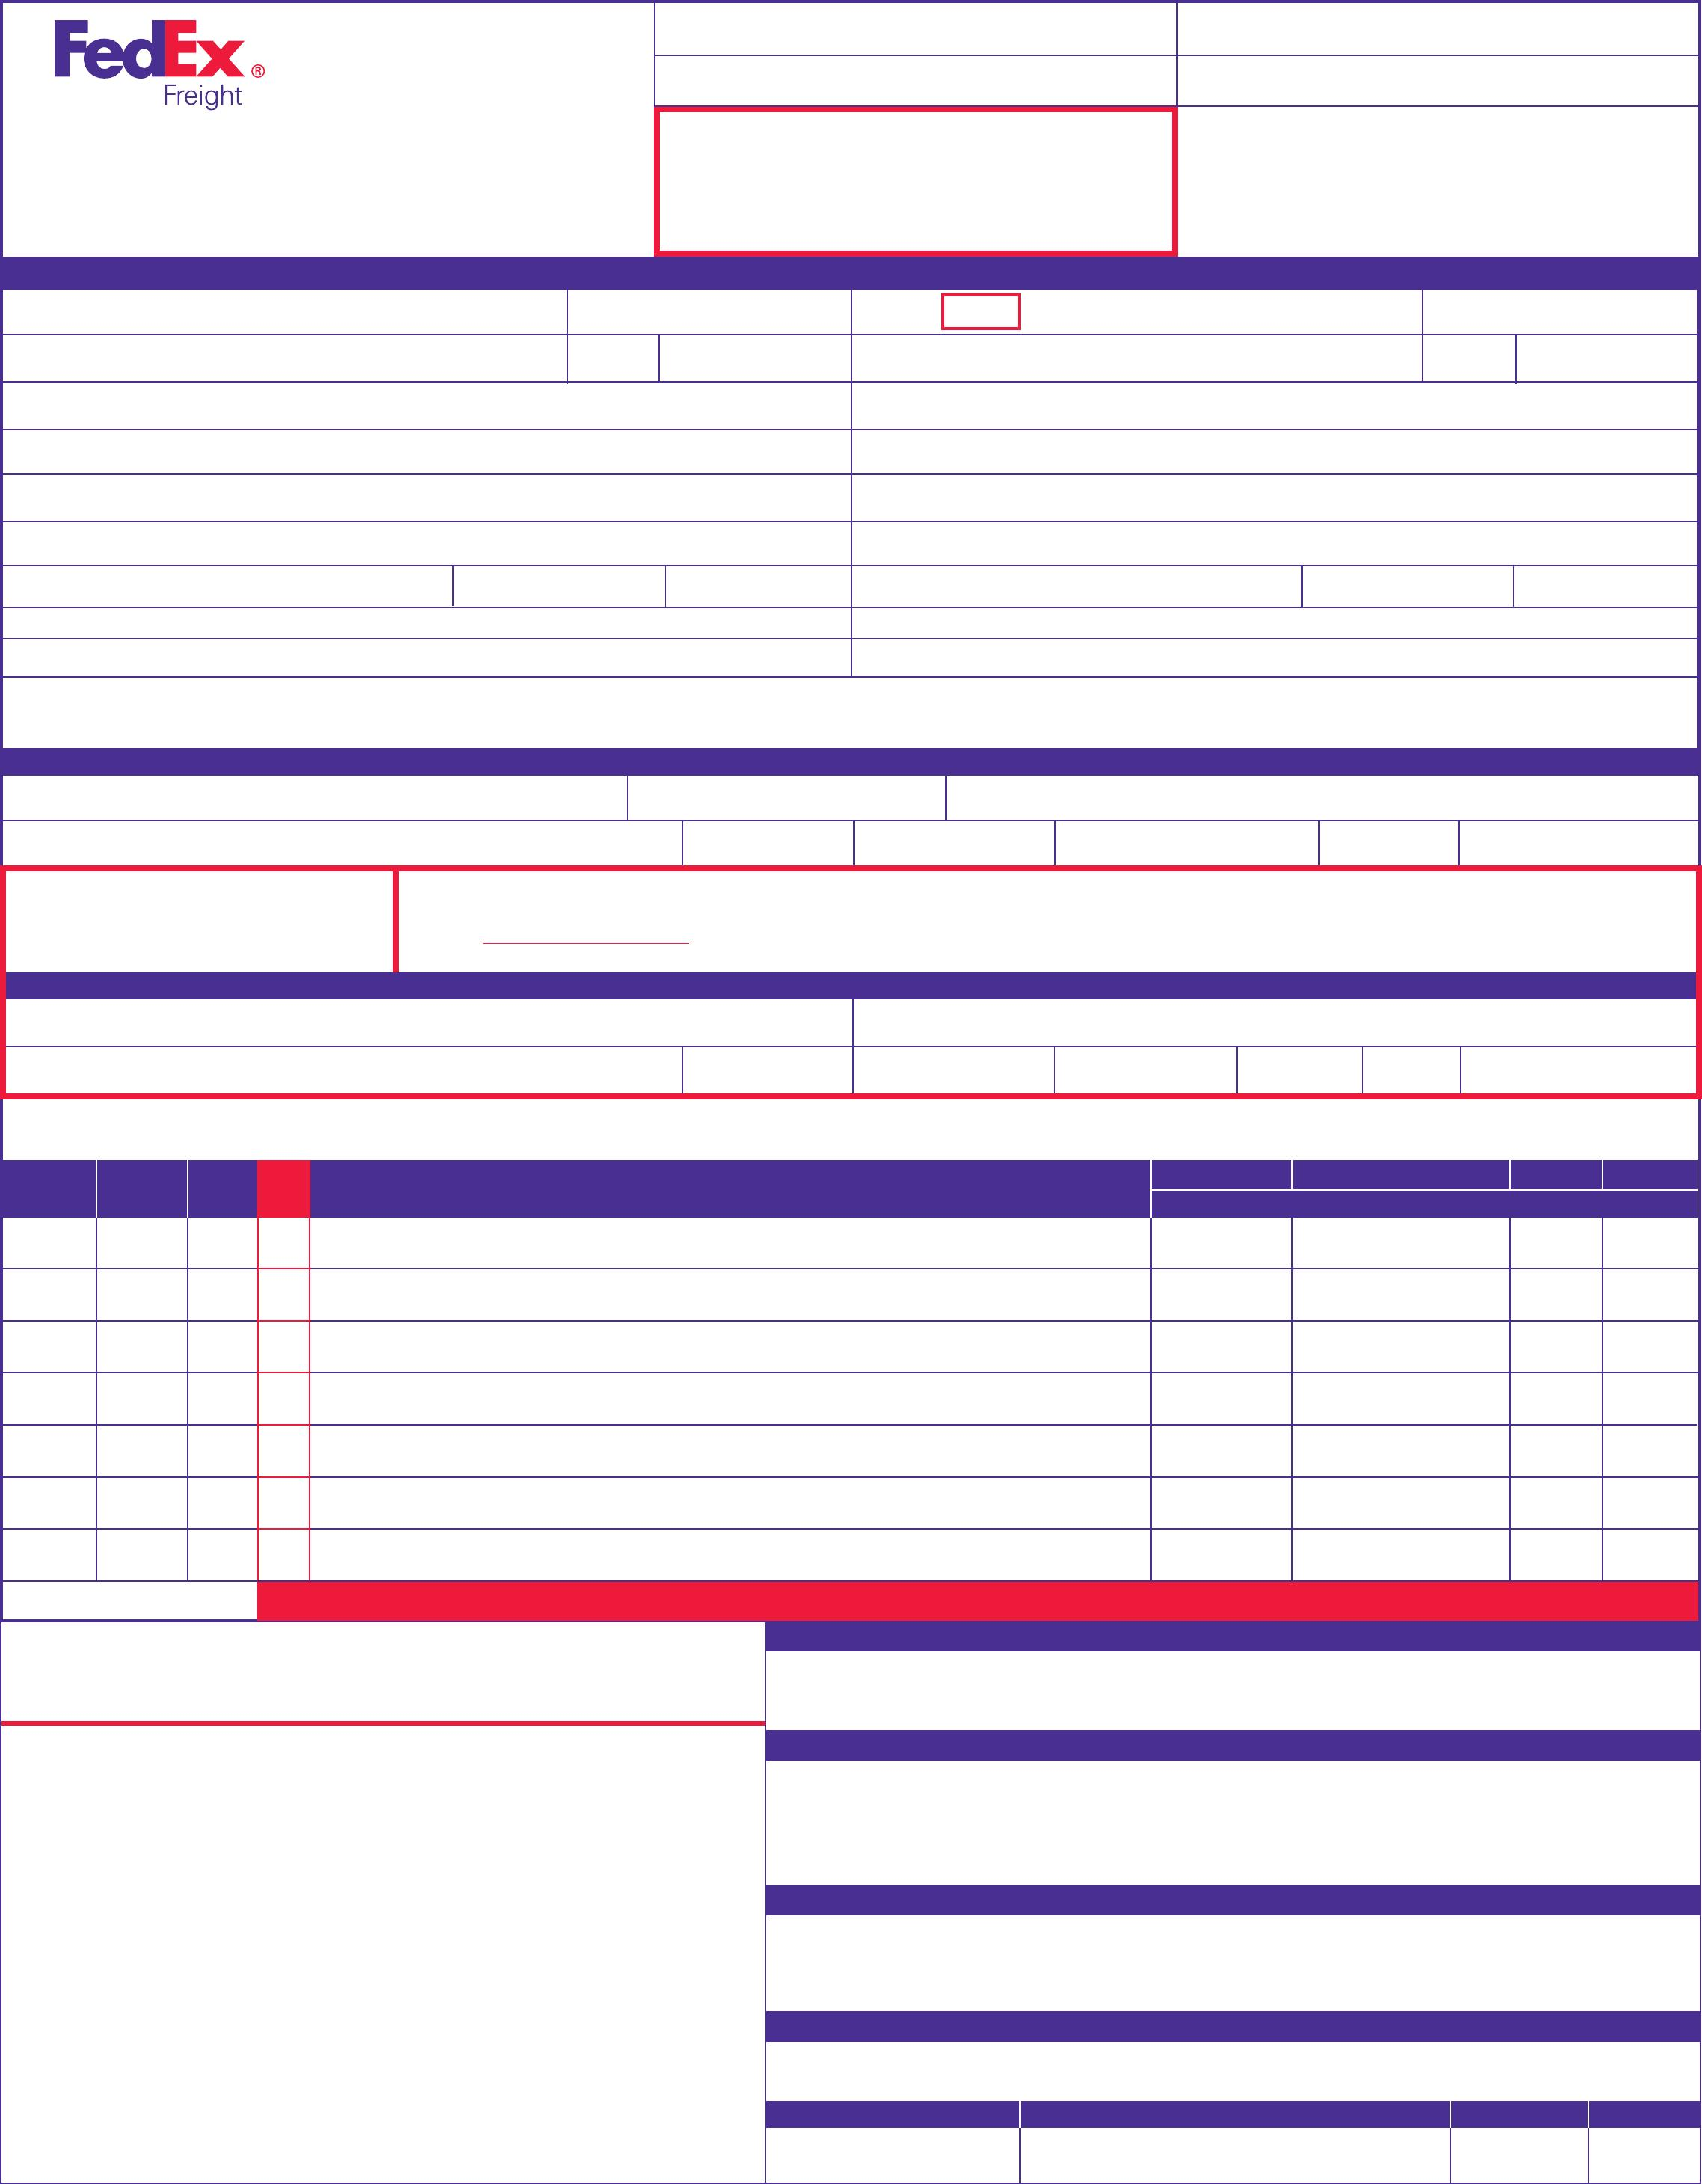 Fedex Freight Bill Of Lading Template